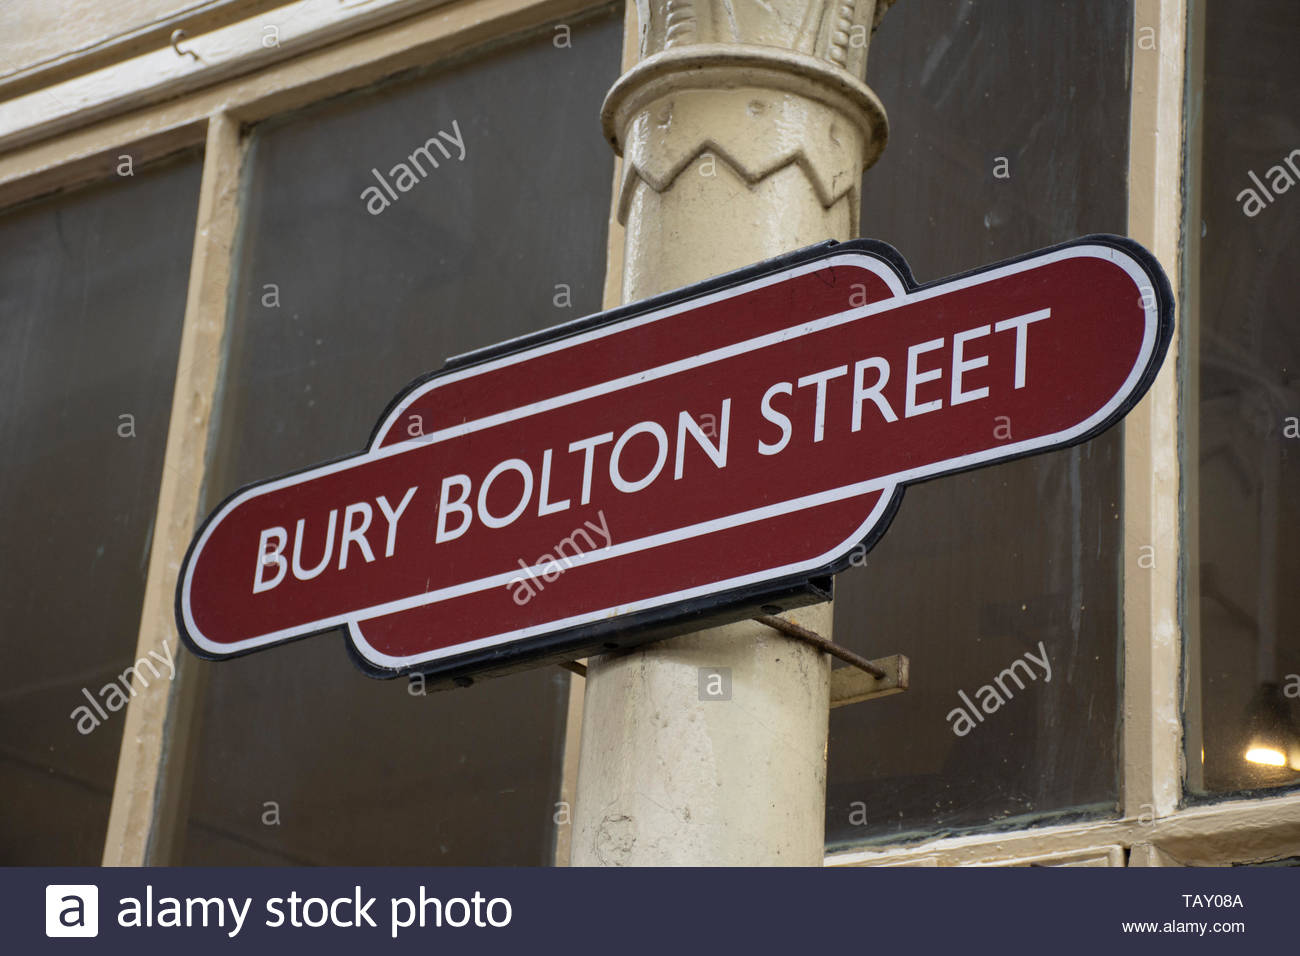 Sign for Bury Bolton Street station on the East Lancs Railway, a heritage line in Bury, Lancashire, UK - Stock Image